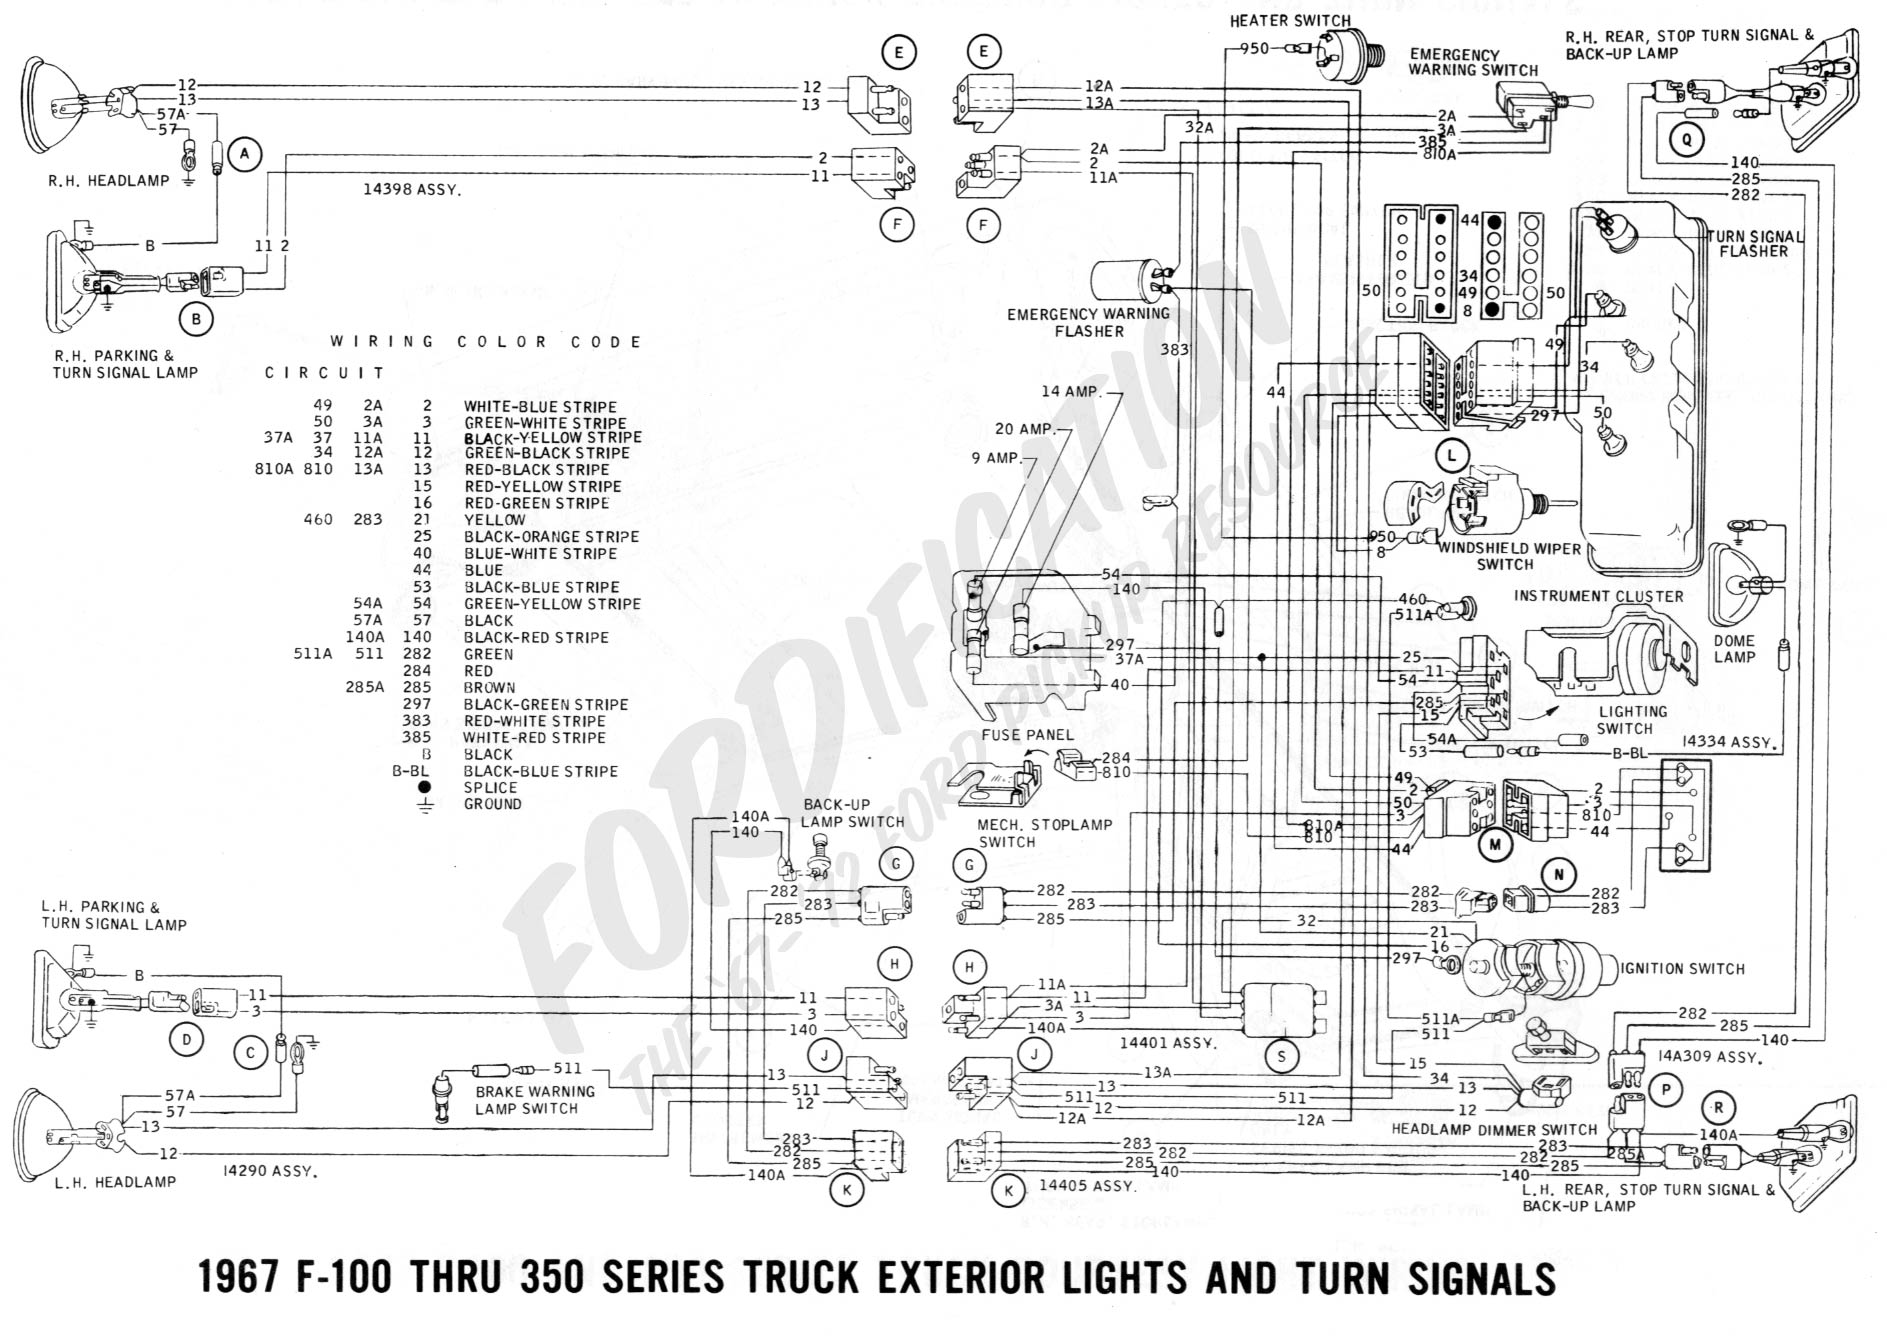 1973 ford f100 turn signal wiring diagram daily update wiring diagram 1970 Ford F100 Wiring Harness